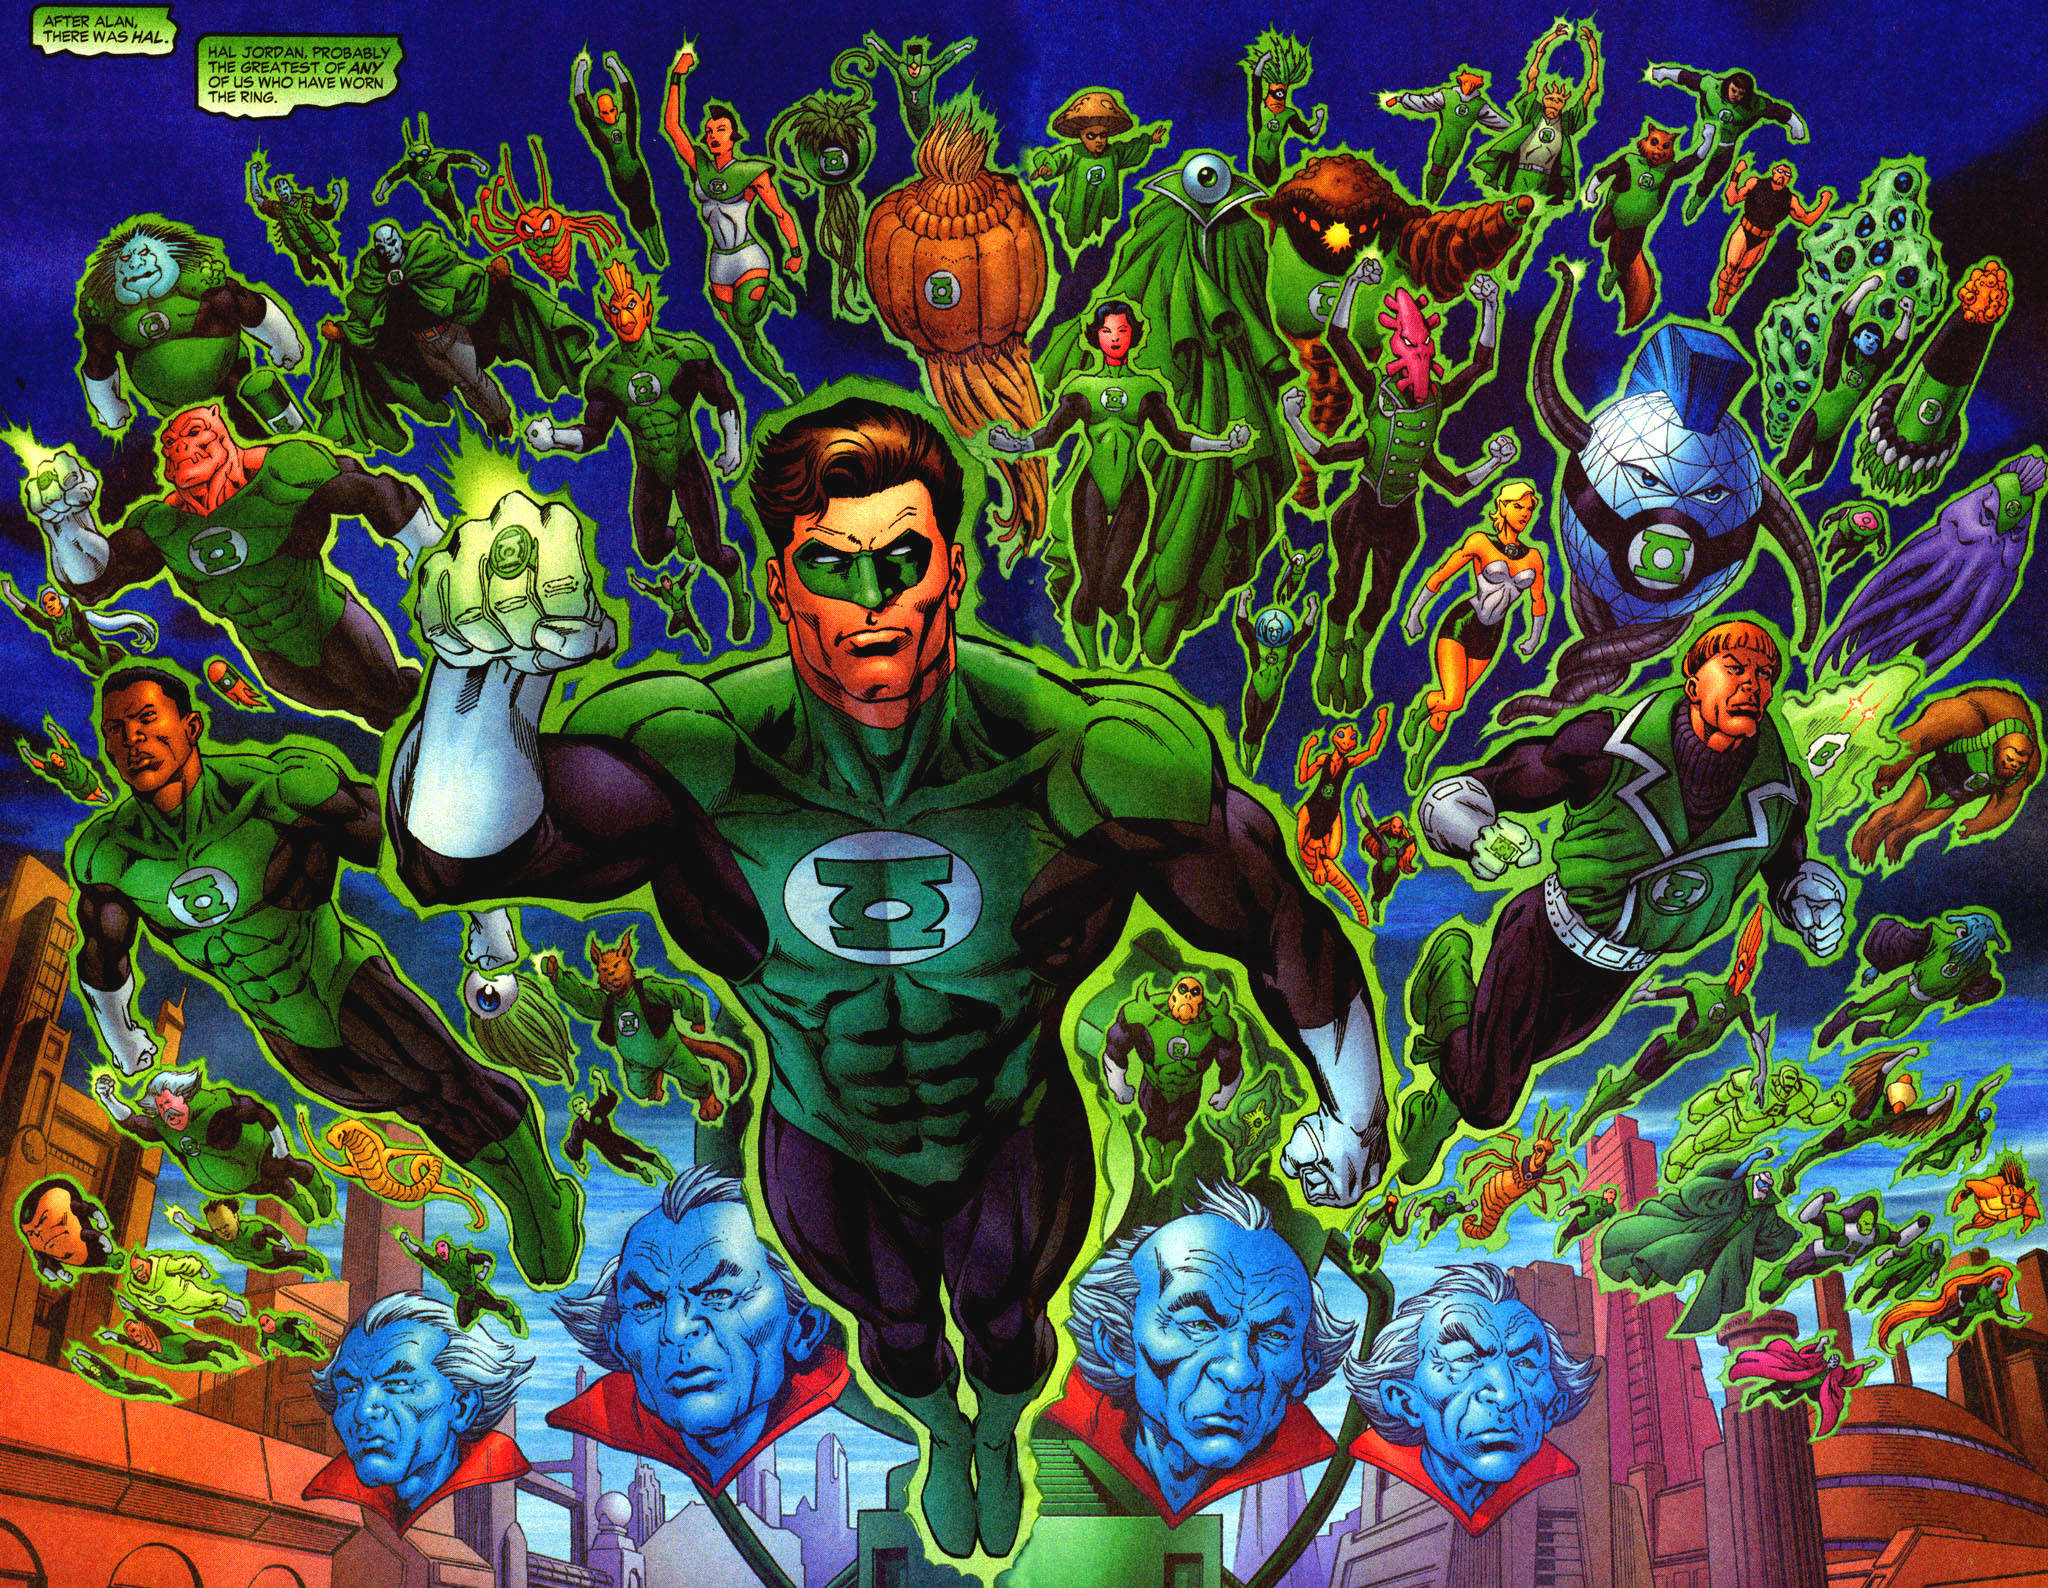 Green Lantern Corps Wallpapers, Pictures, Images